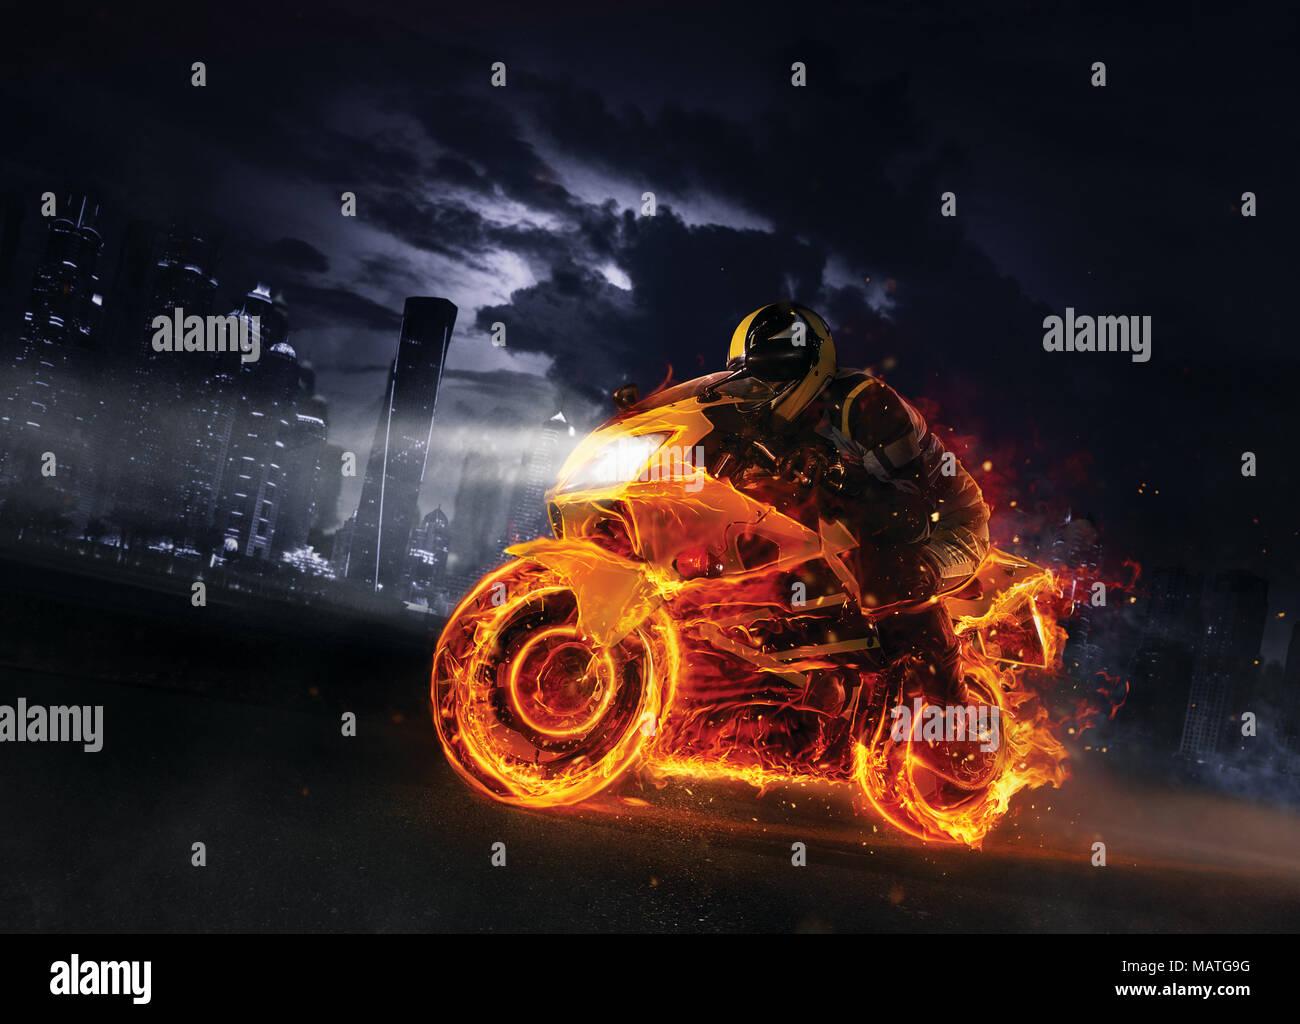 Super Sport Fire Motorbike With Skysc Rs On Background Wallpaper Motive With Fast Motorcycle In Dramatic Dark Scene